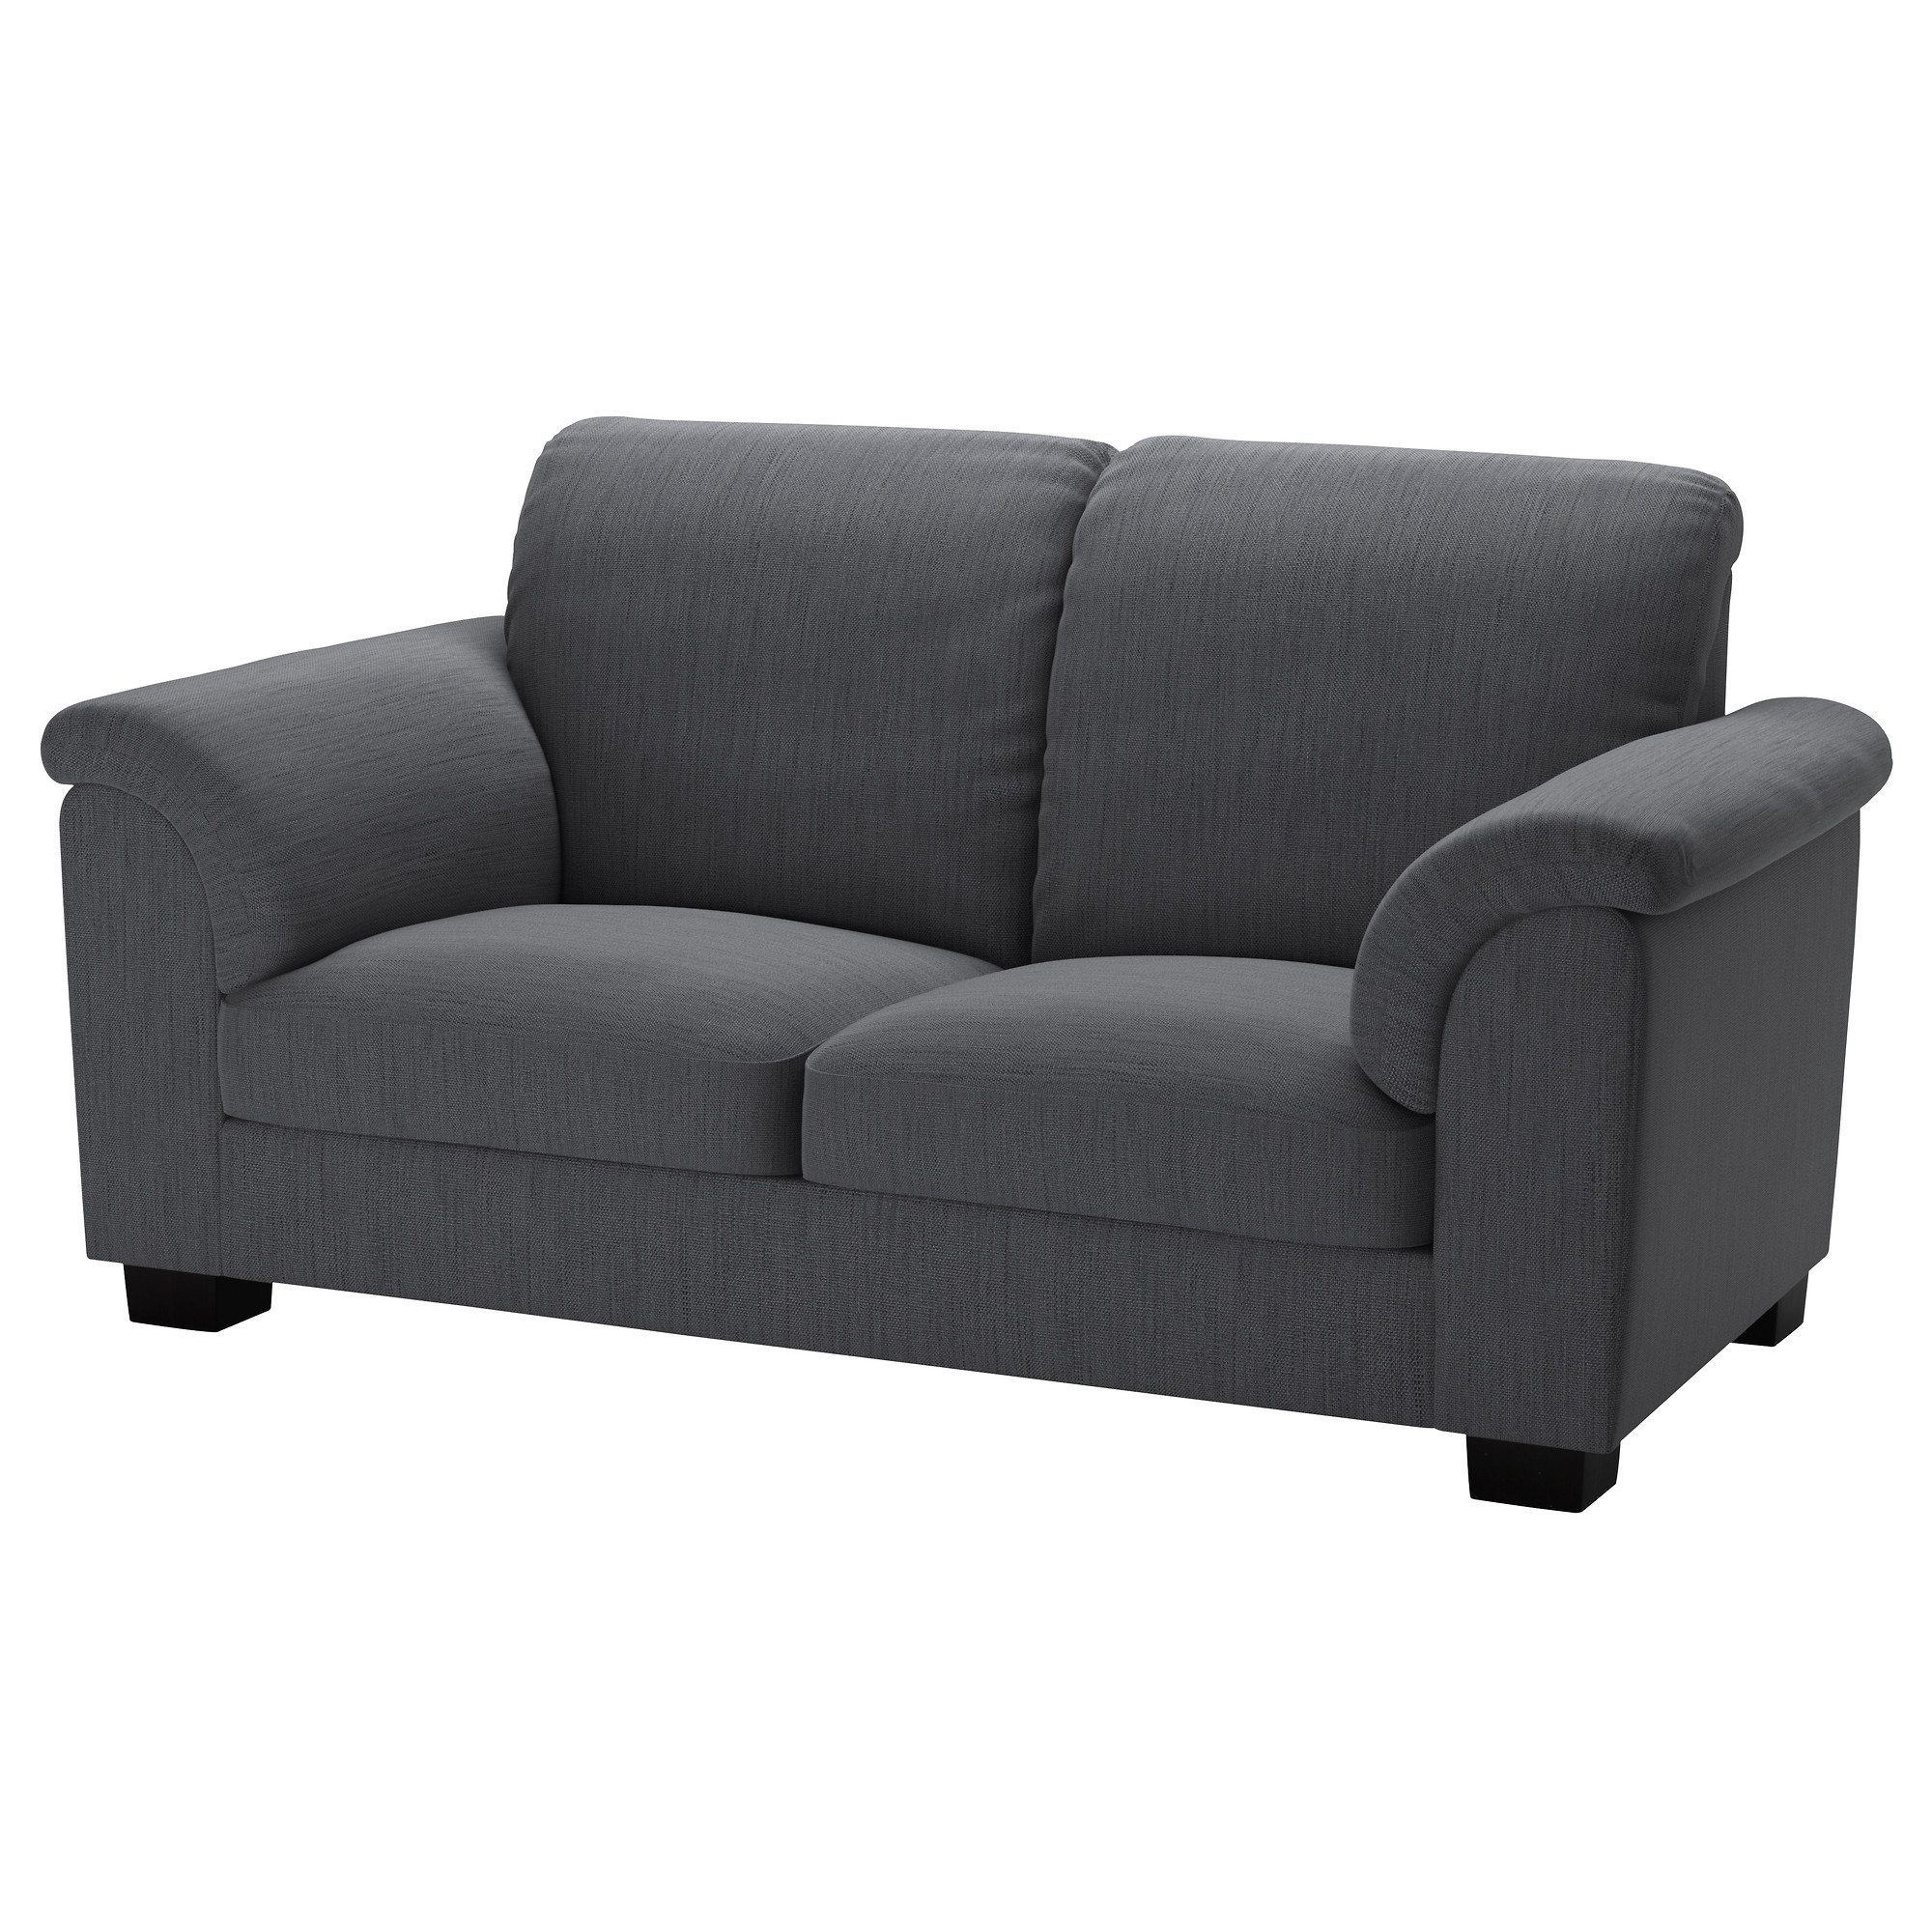 Fabric Sofas Modern & Contemporary IKEA